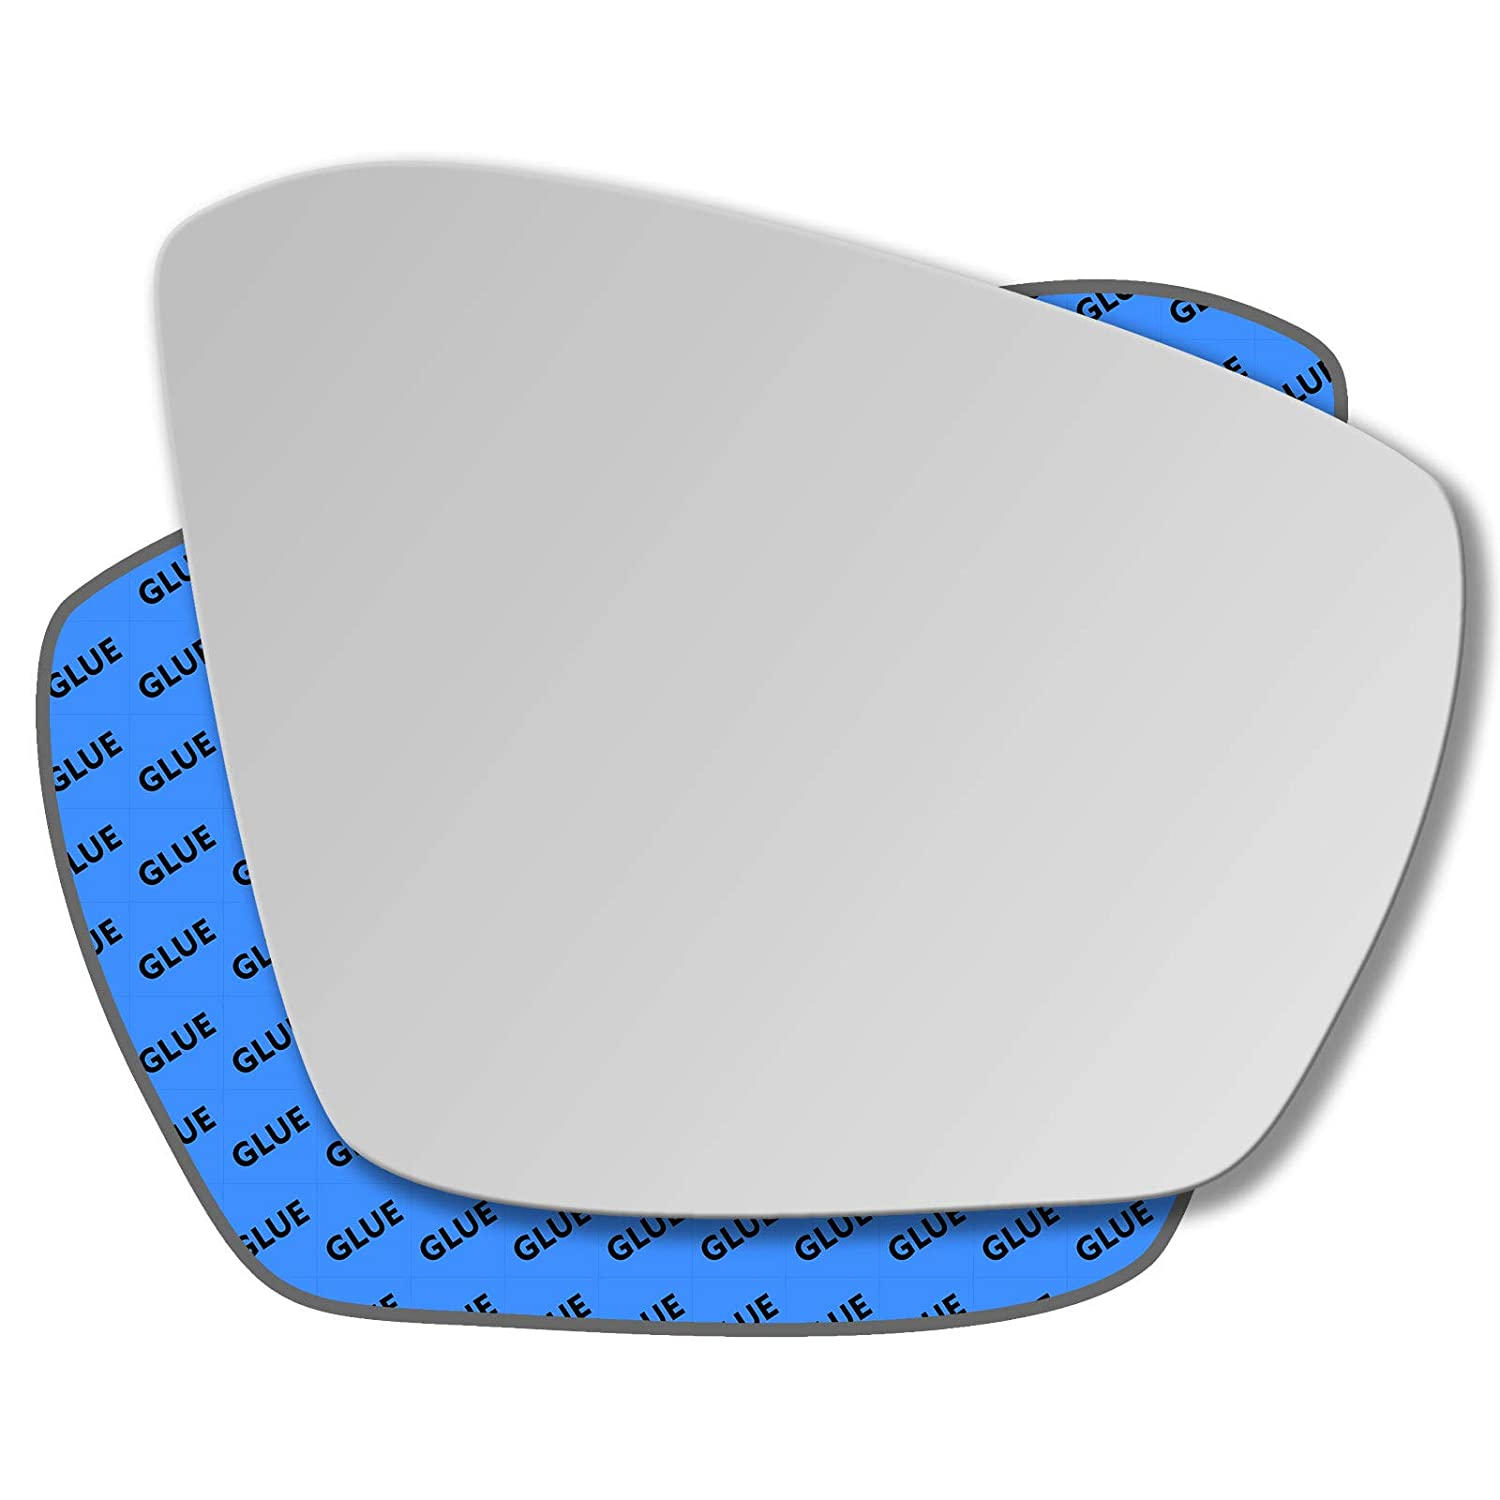 Hightecpl 131RS Right Driver Side Convex Door Wing Mirror Glass